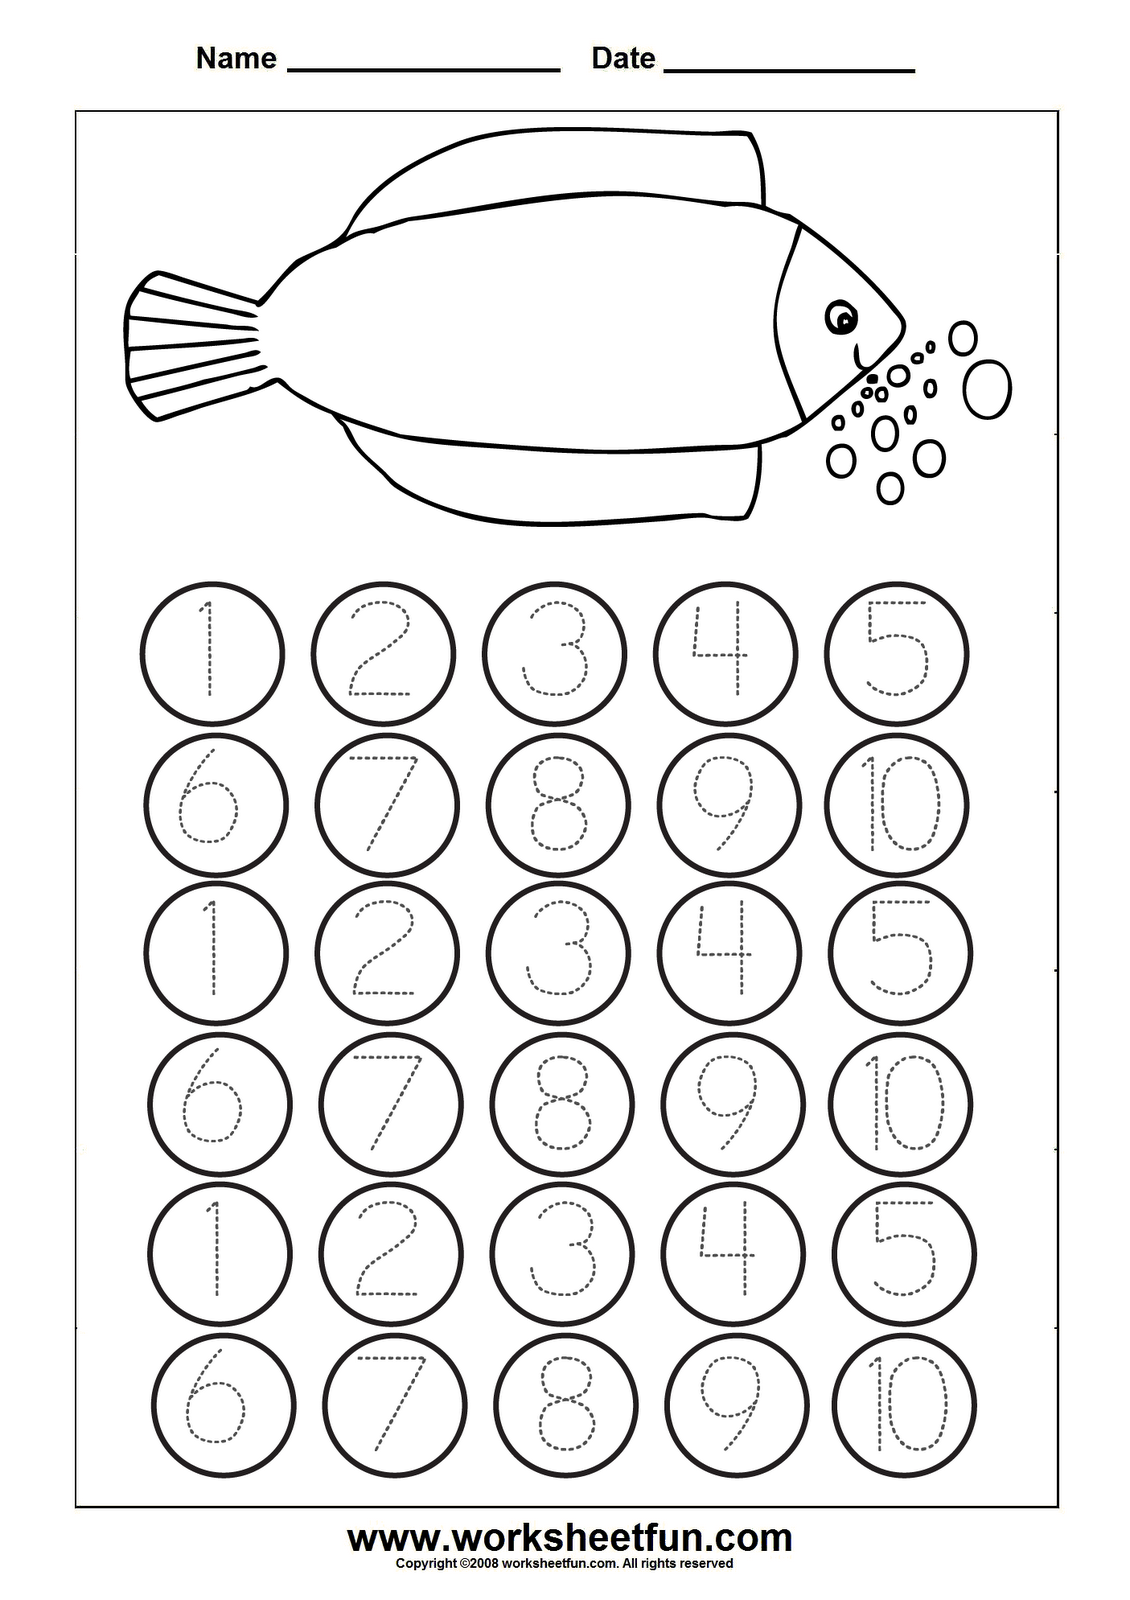 Printables Number Tracing Worksheets For Kindergarten – Numbers 1-5 Worksheets Kindergarten